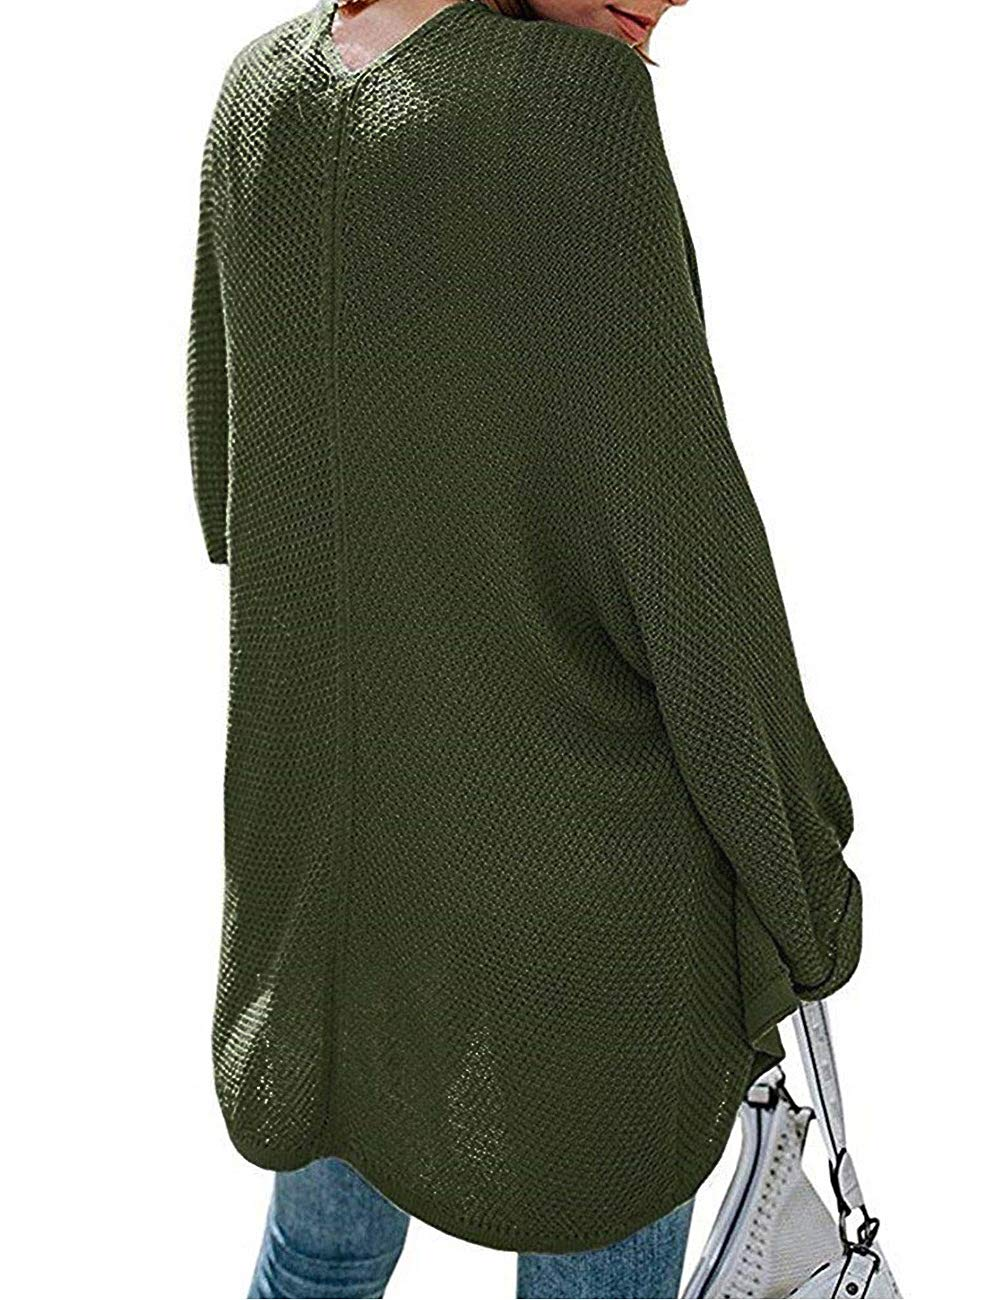 PARIS HILL Softome Womens Long Sleeve Cardigans Oversized Open Front Basic Casual Knit Sweaters Coat Army Green XX Large by PARIS HILL (Image #4)